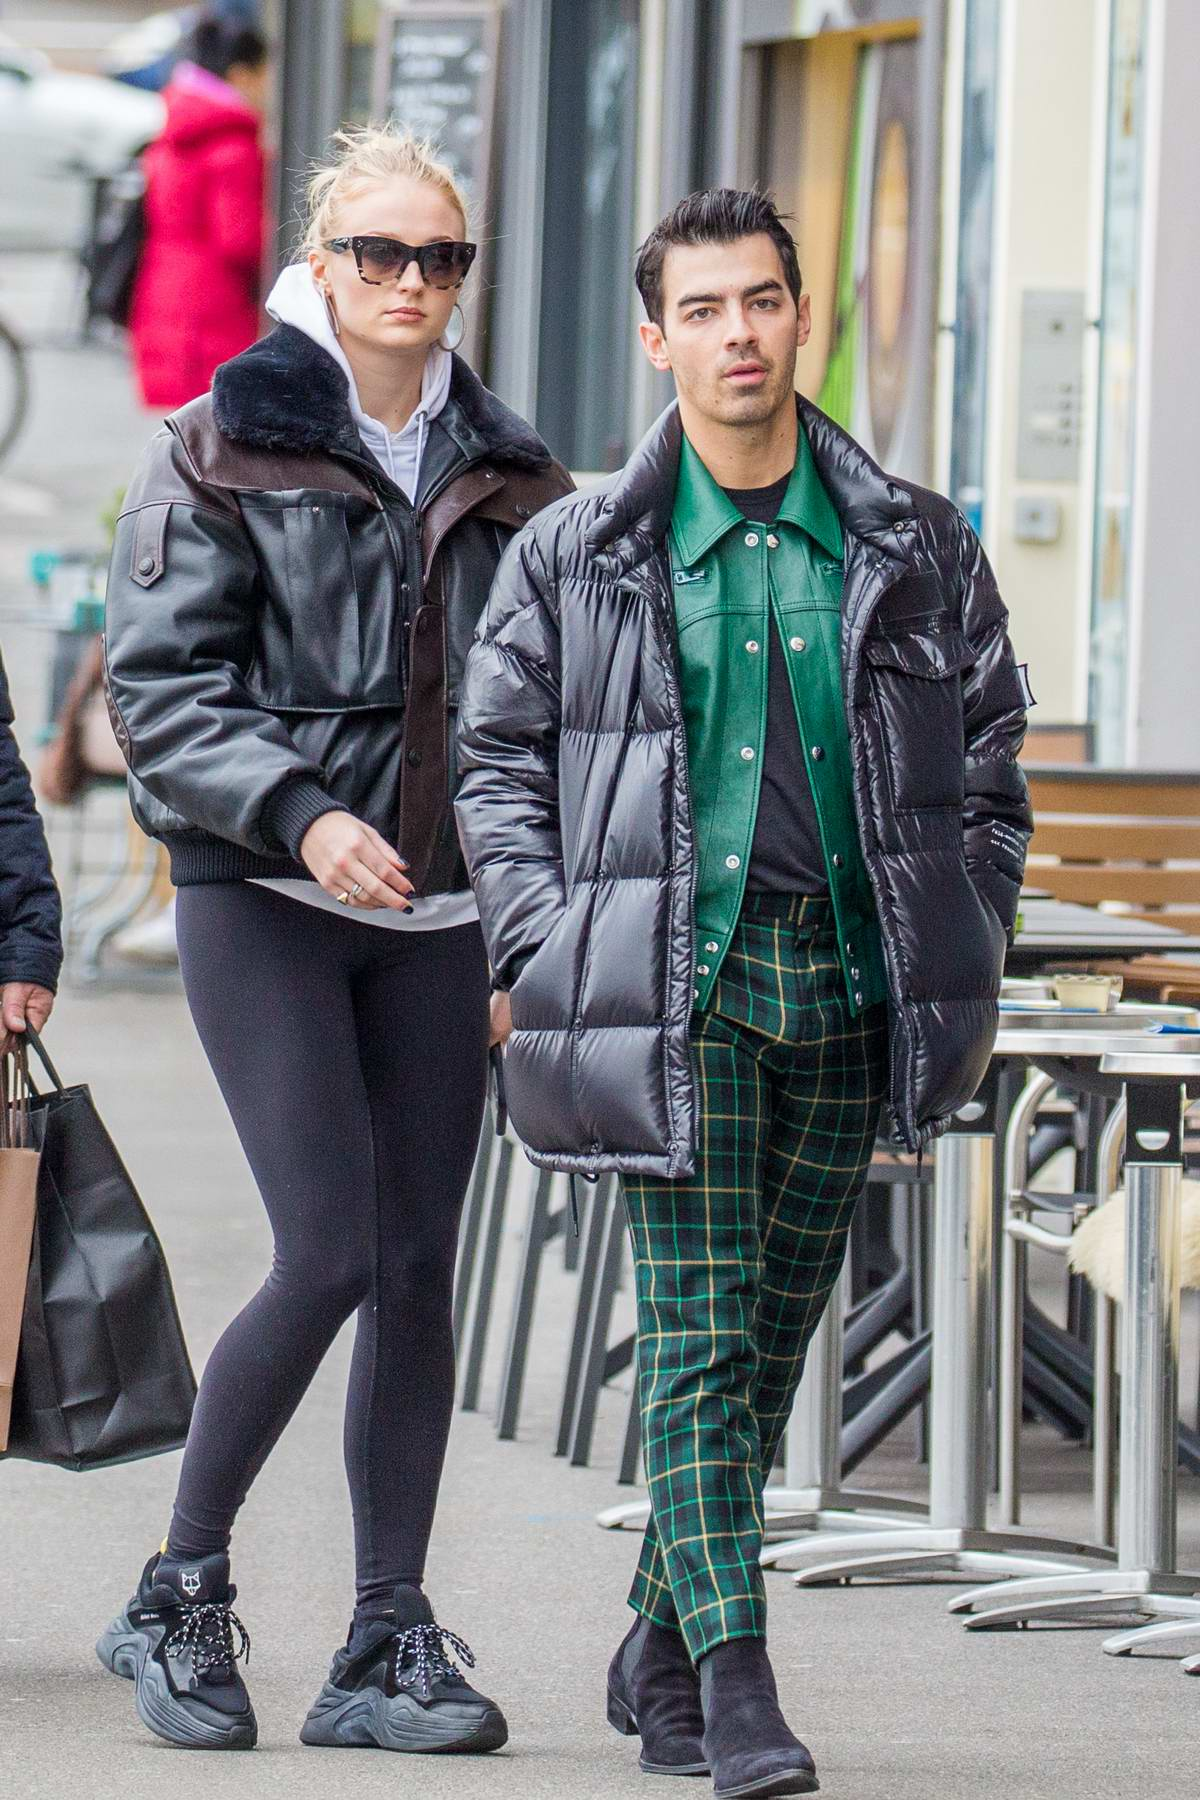 Sophie Turner and Joe Jonas spotted for the first time after announcing their pregnancy, Zurich, Switzerland